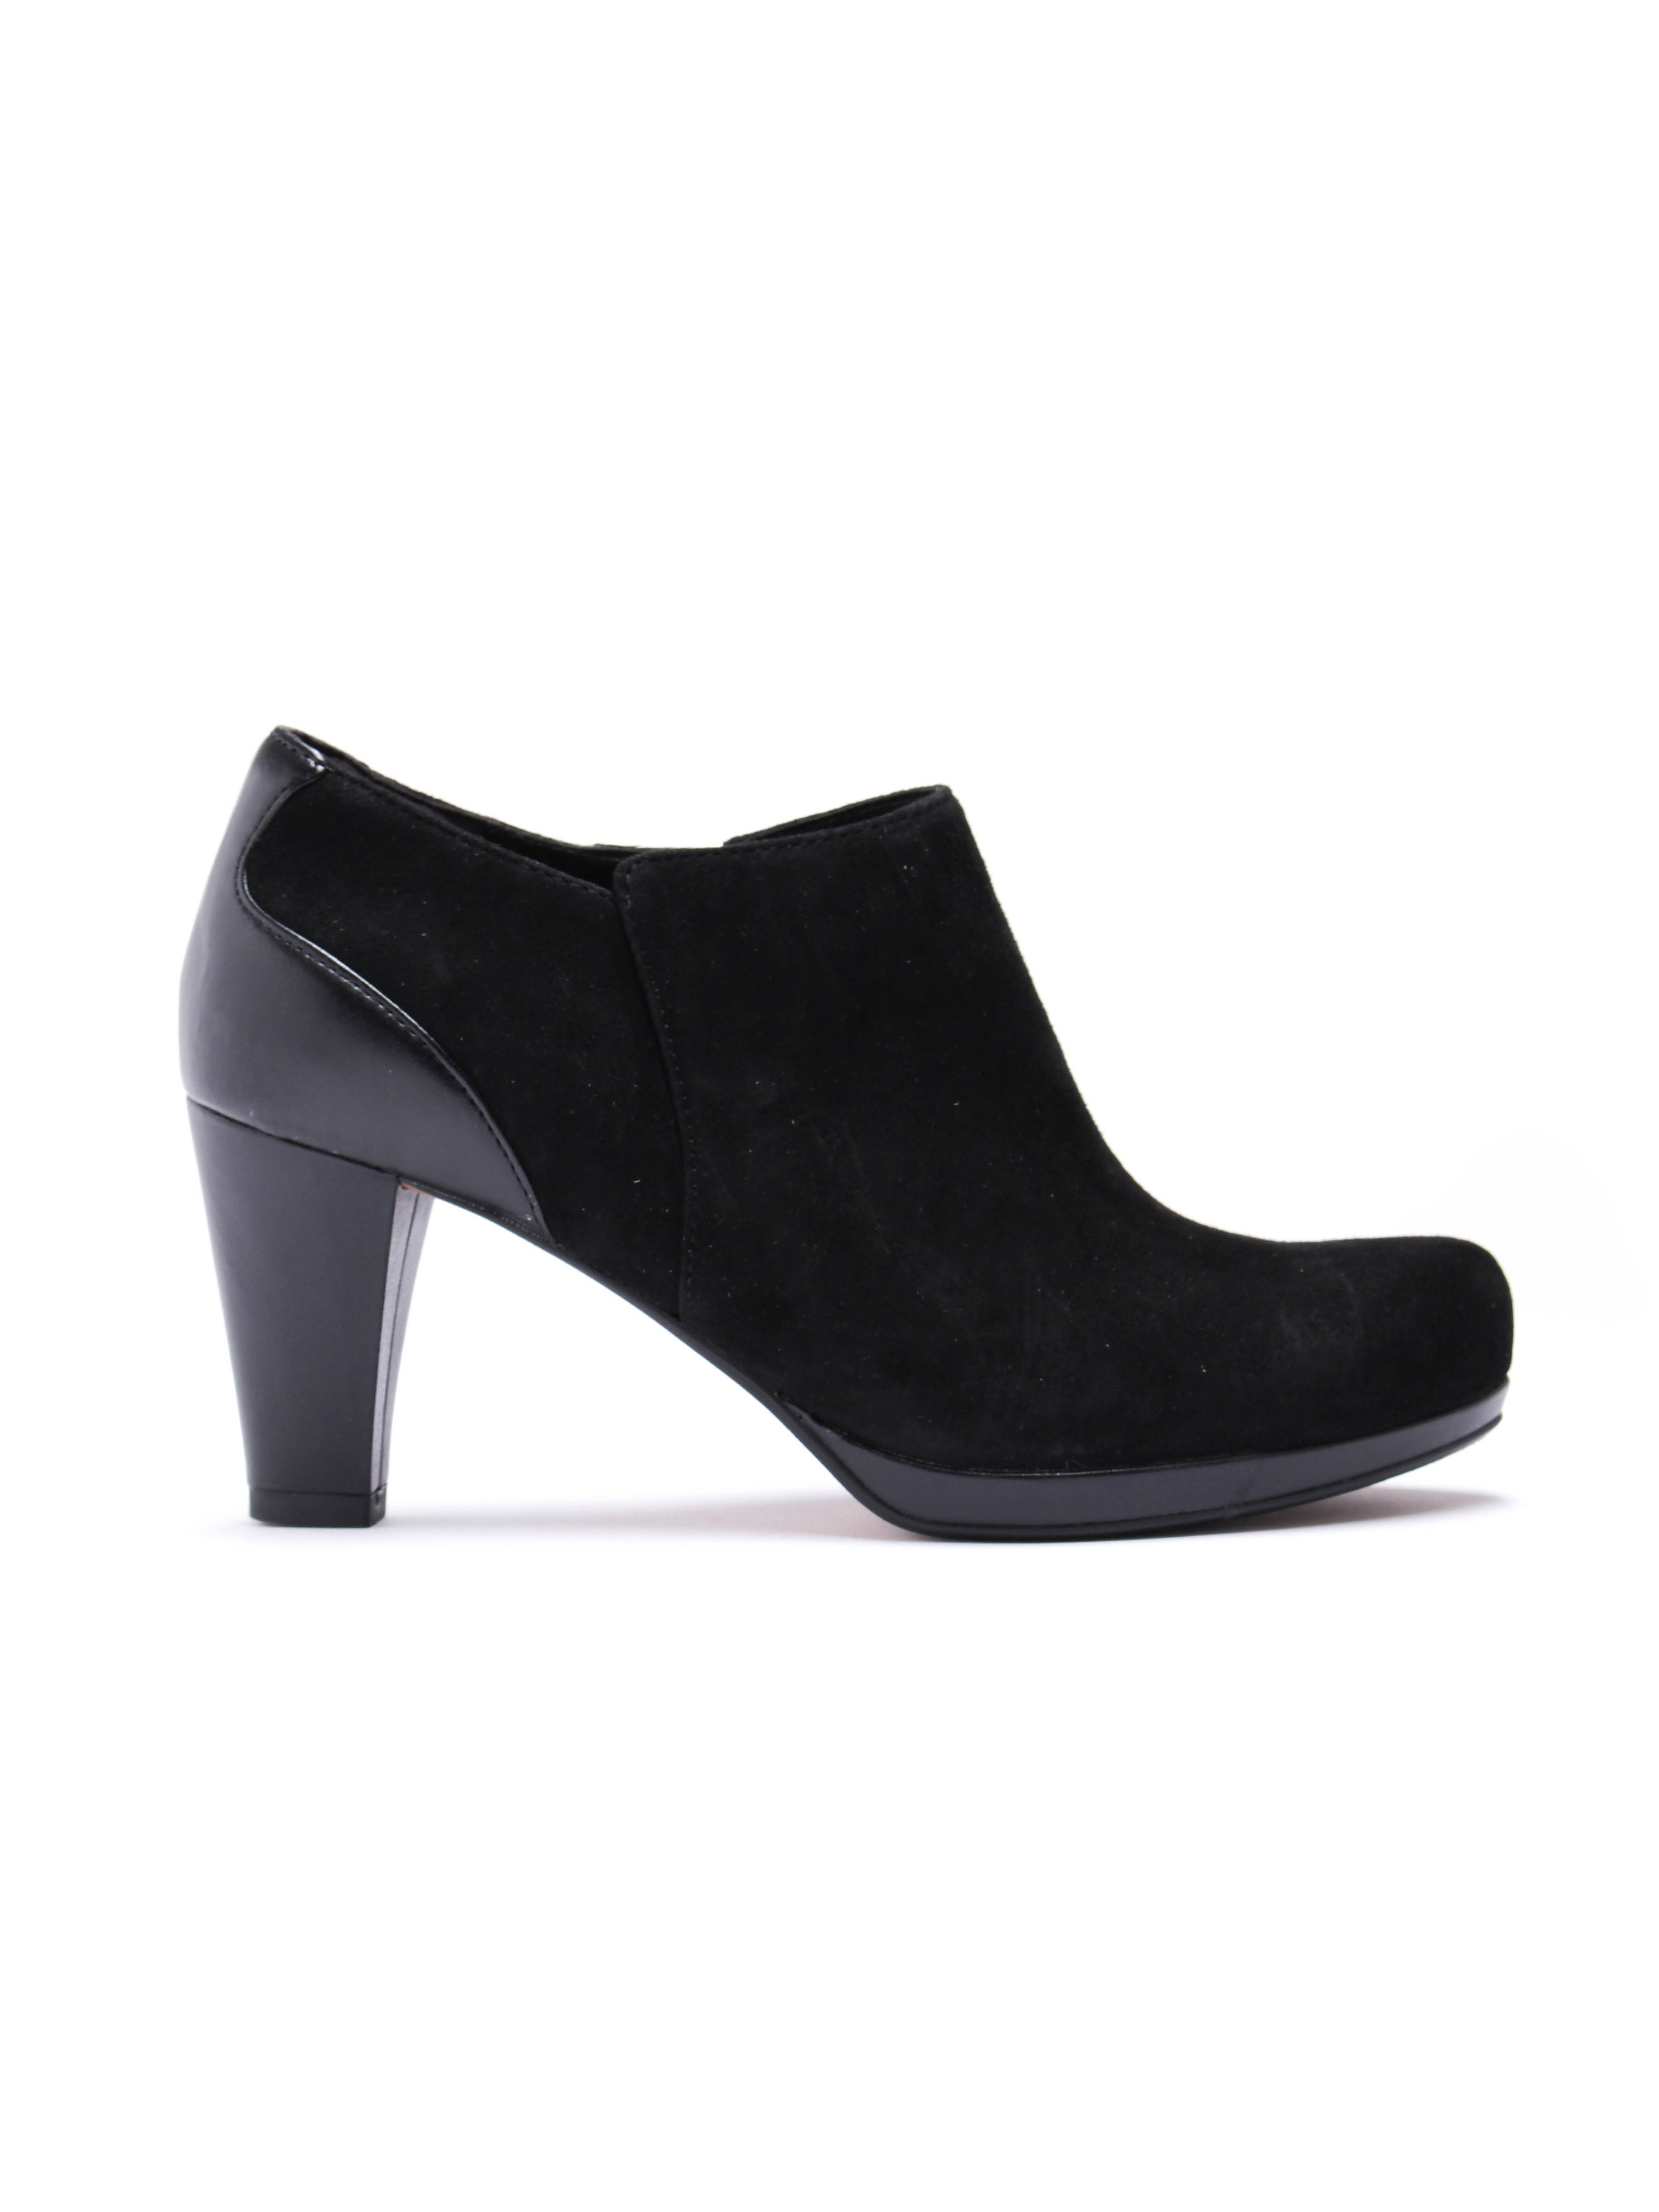 Clarks Women's Chorus True Suede Shoe - Black